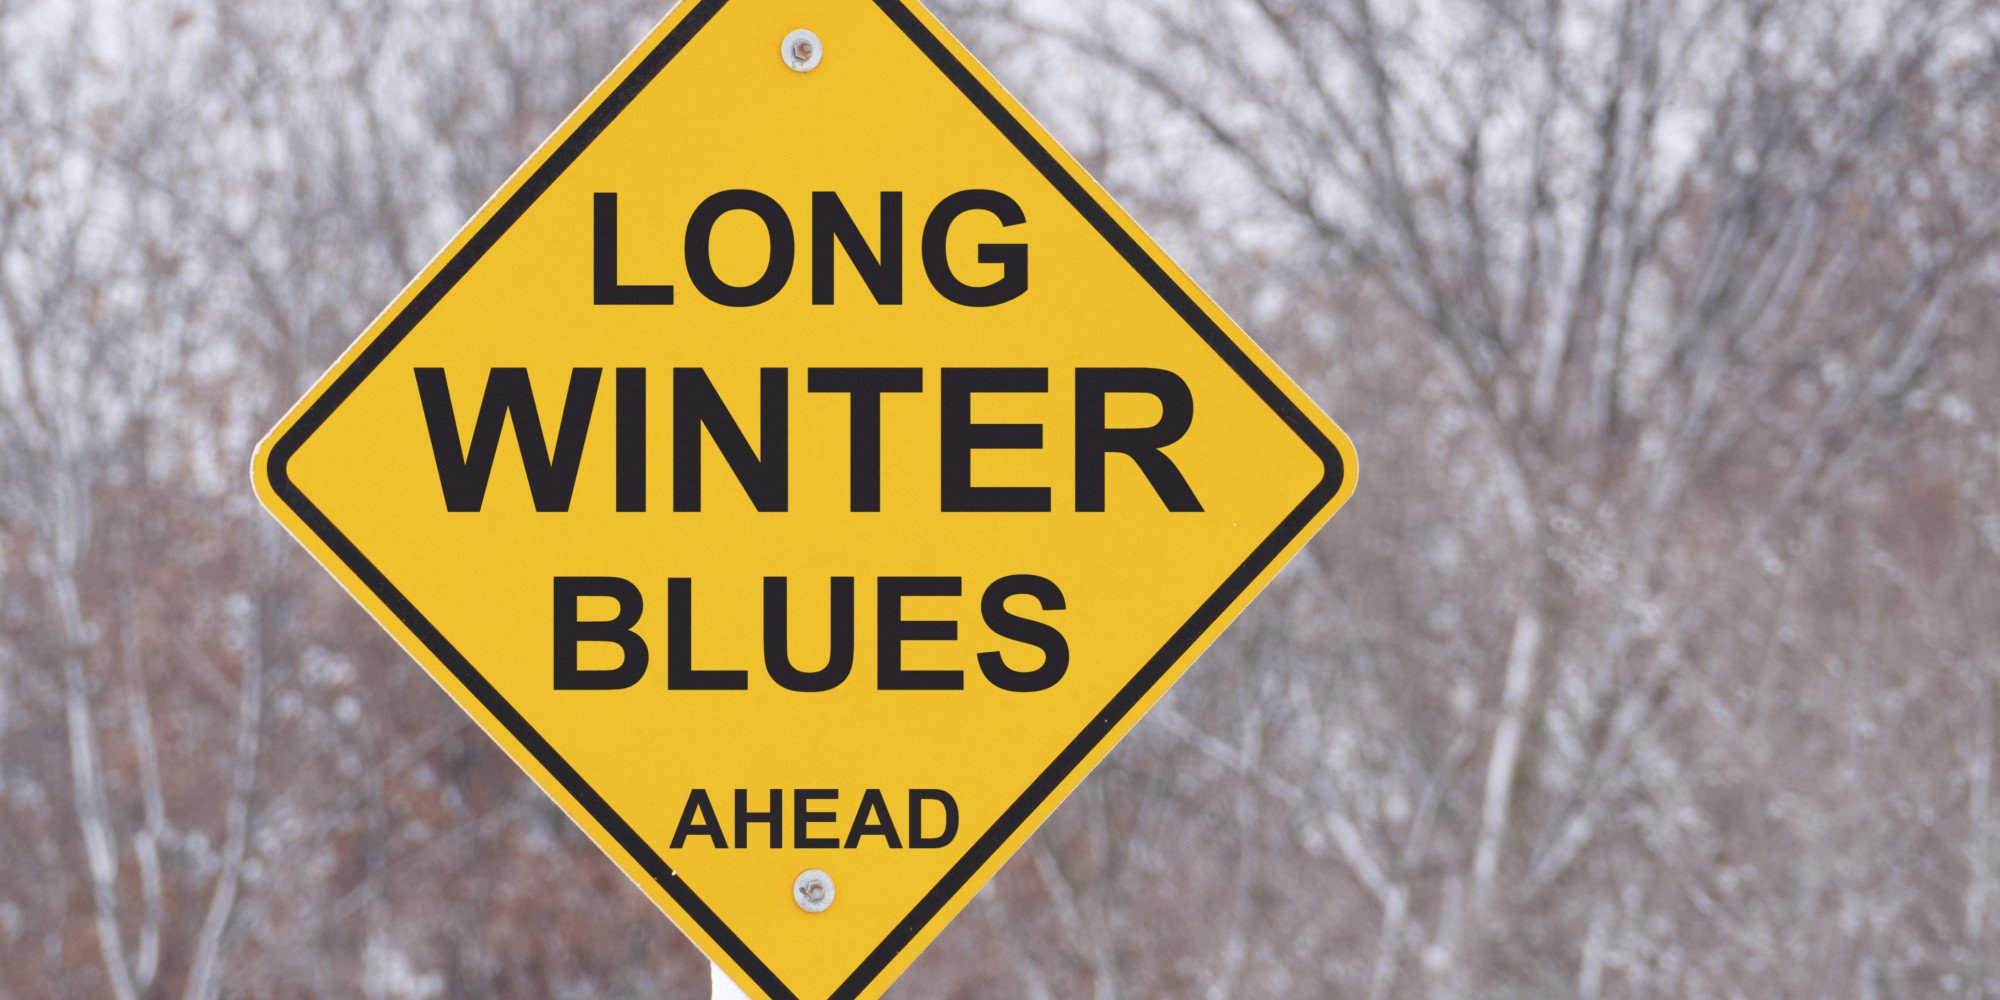 Winter Blues Ahead sign in winter scene